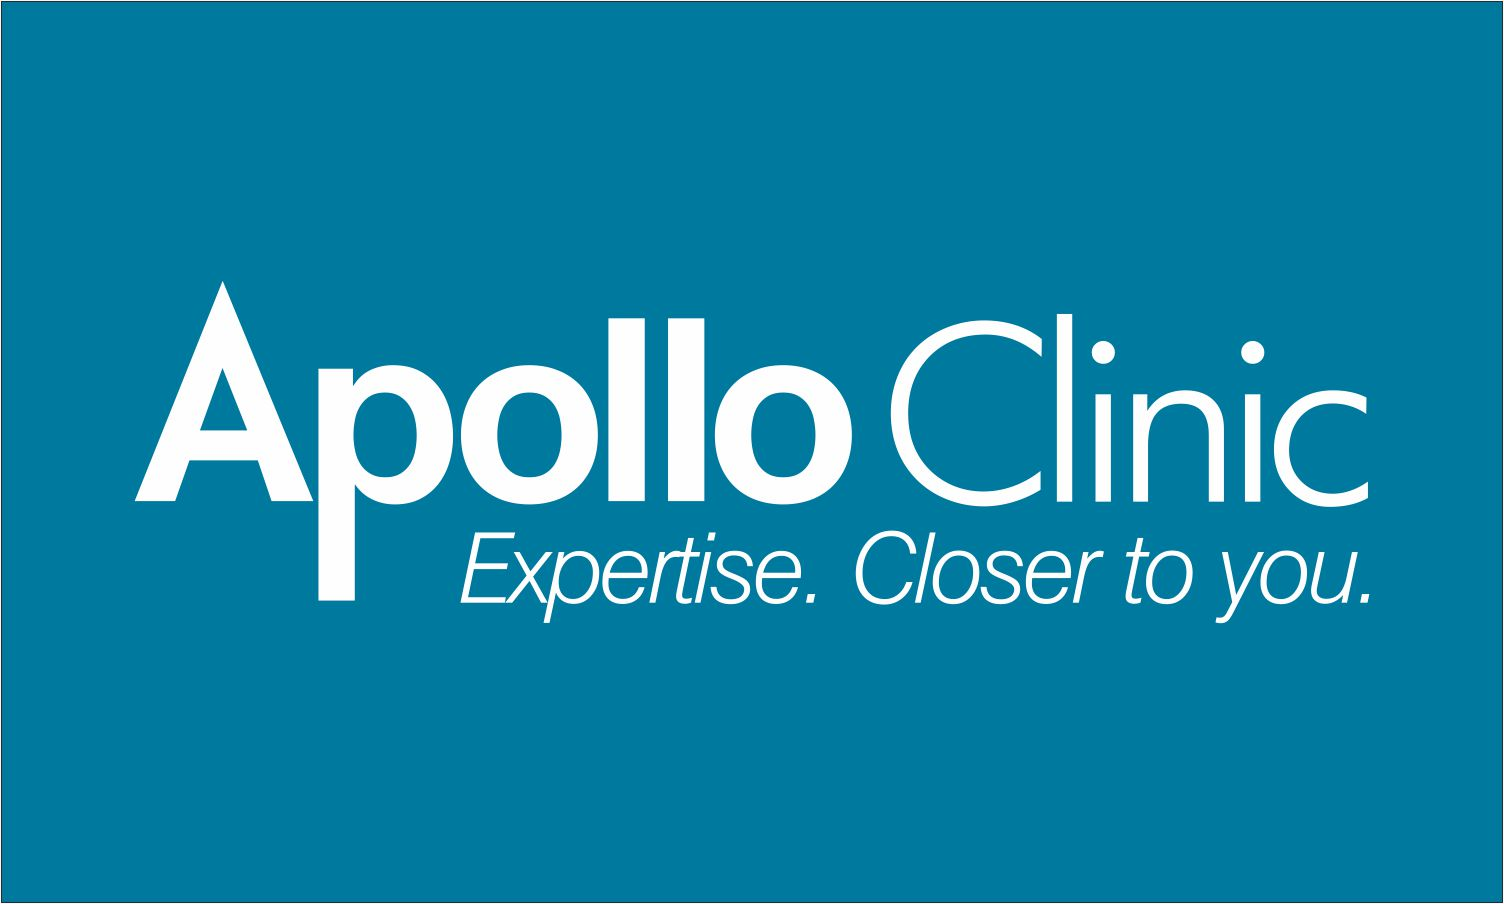 Apollo Clinic - Bellandur - Bangalore Image